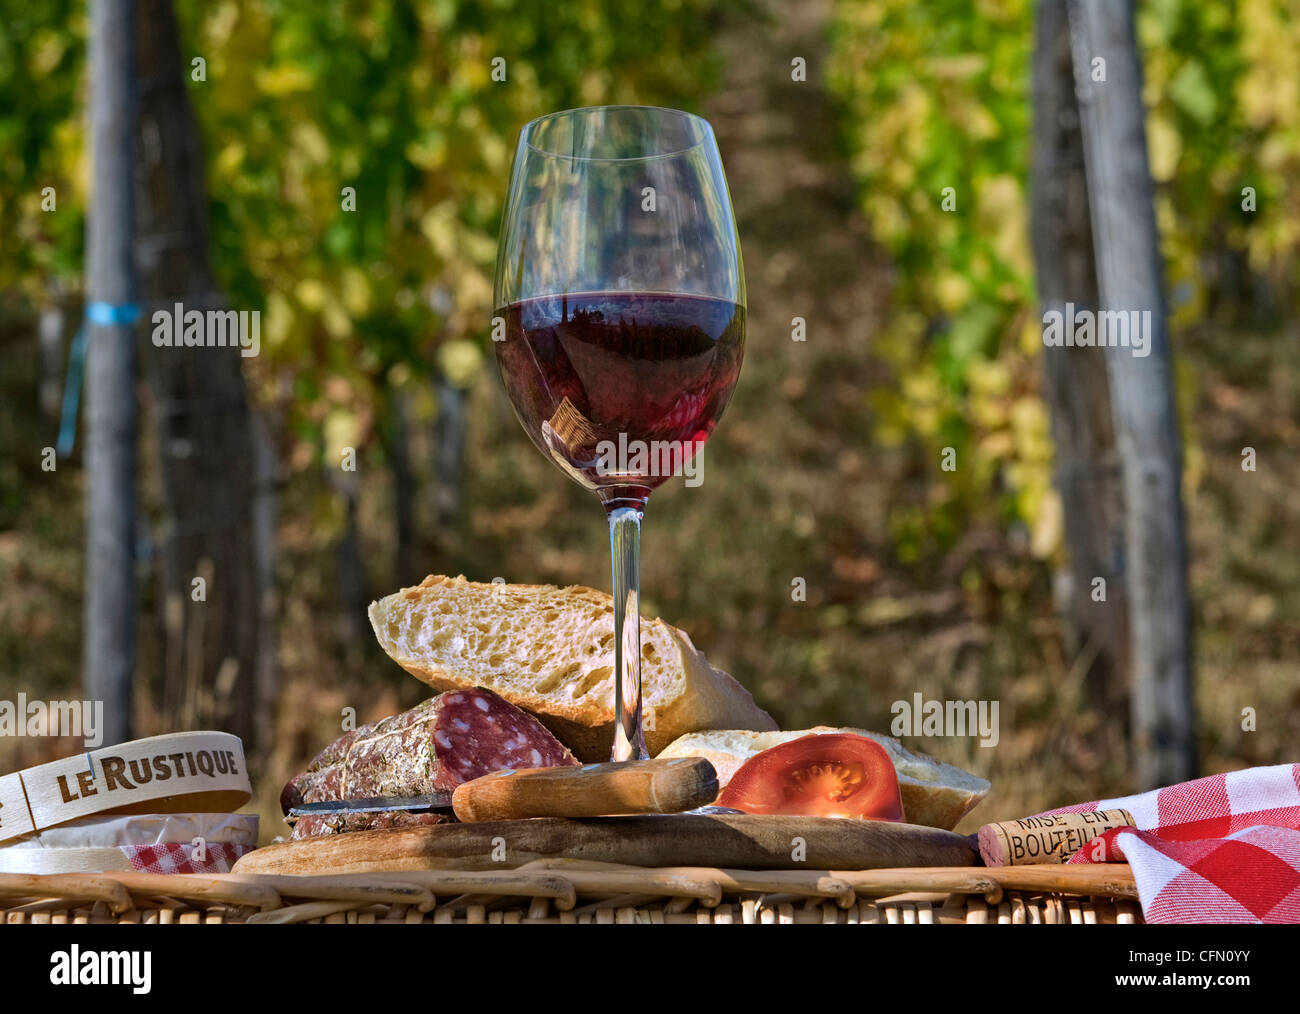 Typical French Rustic Picnic Lunch With Local Red Wine Bread Cheese And Saucisson In Vineyard France